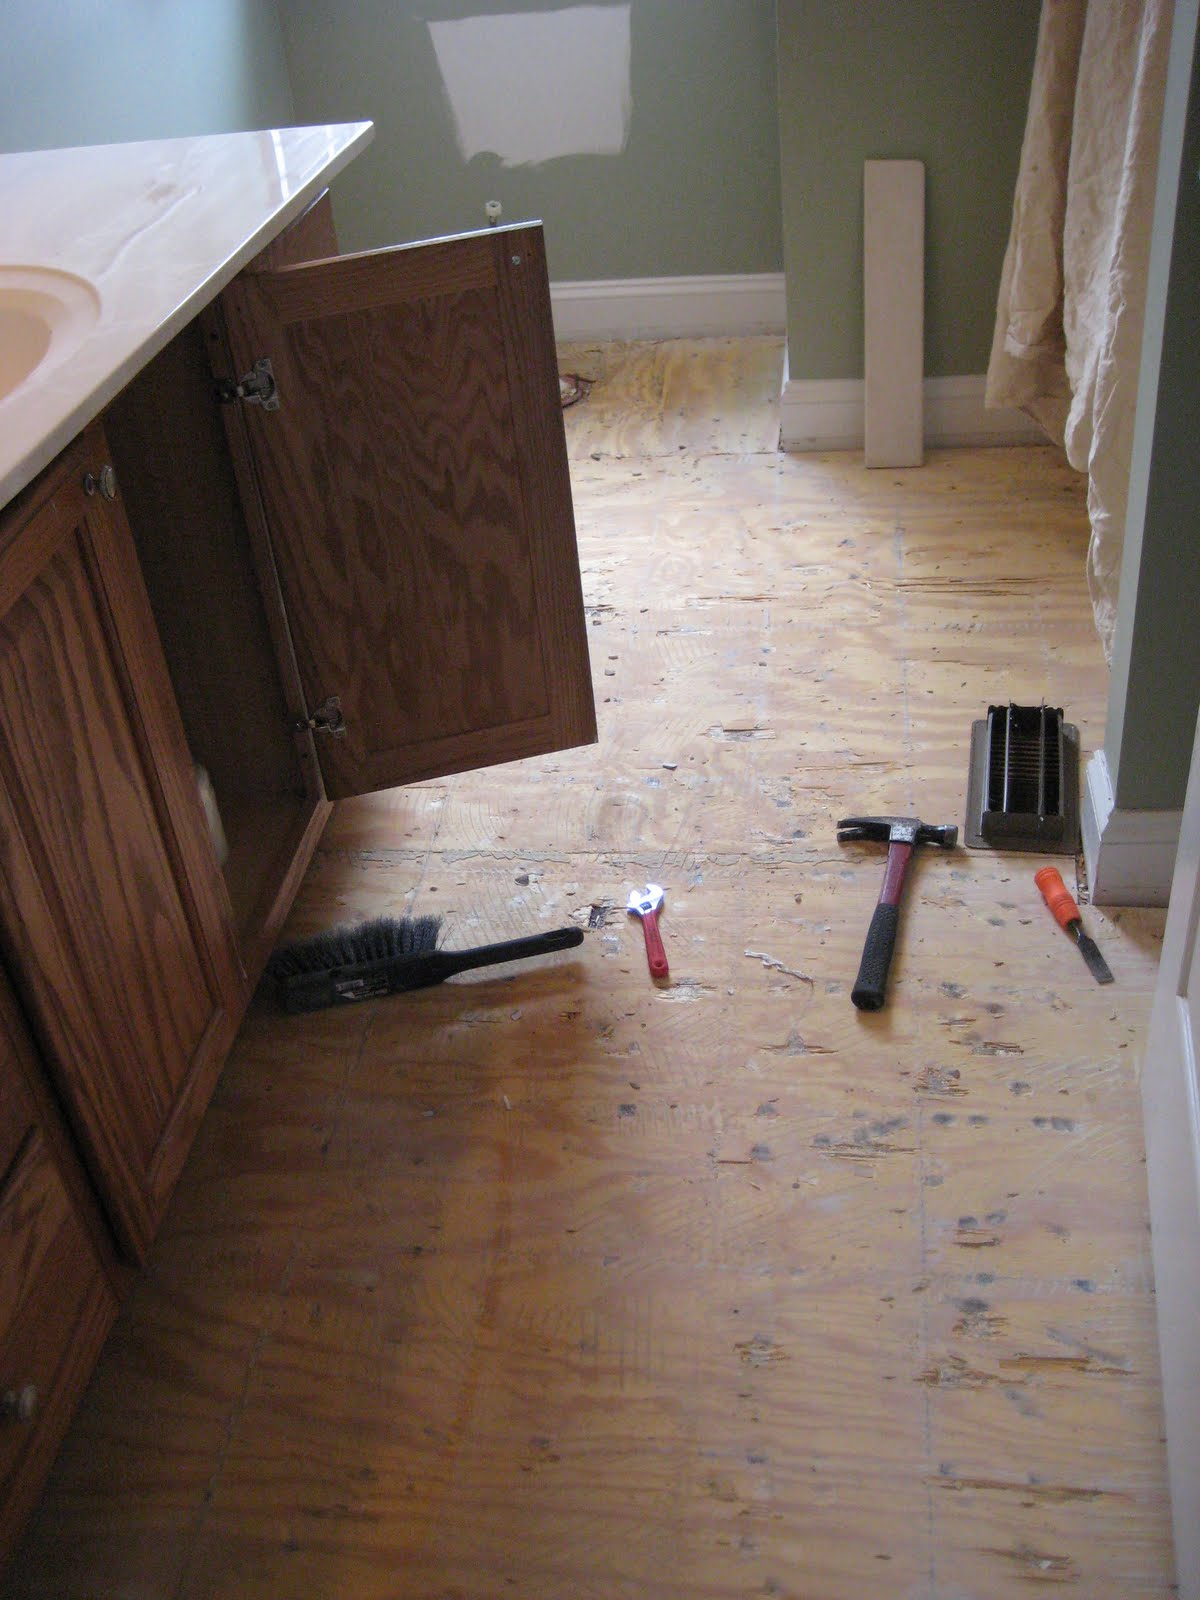 Bathroom Demolition - preparing for a new tile floor - 10 Tiling Tips